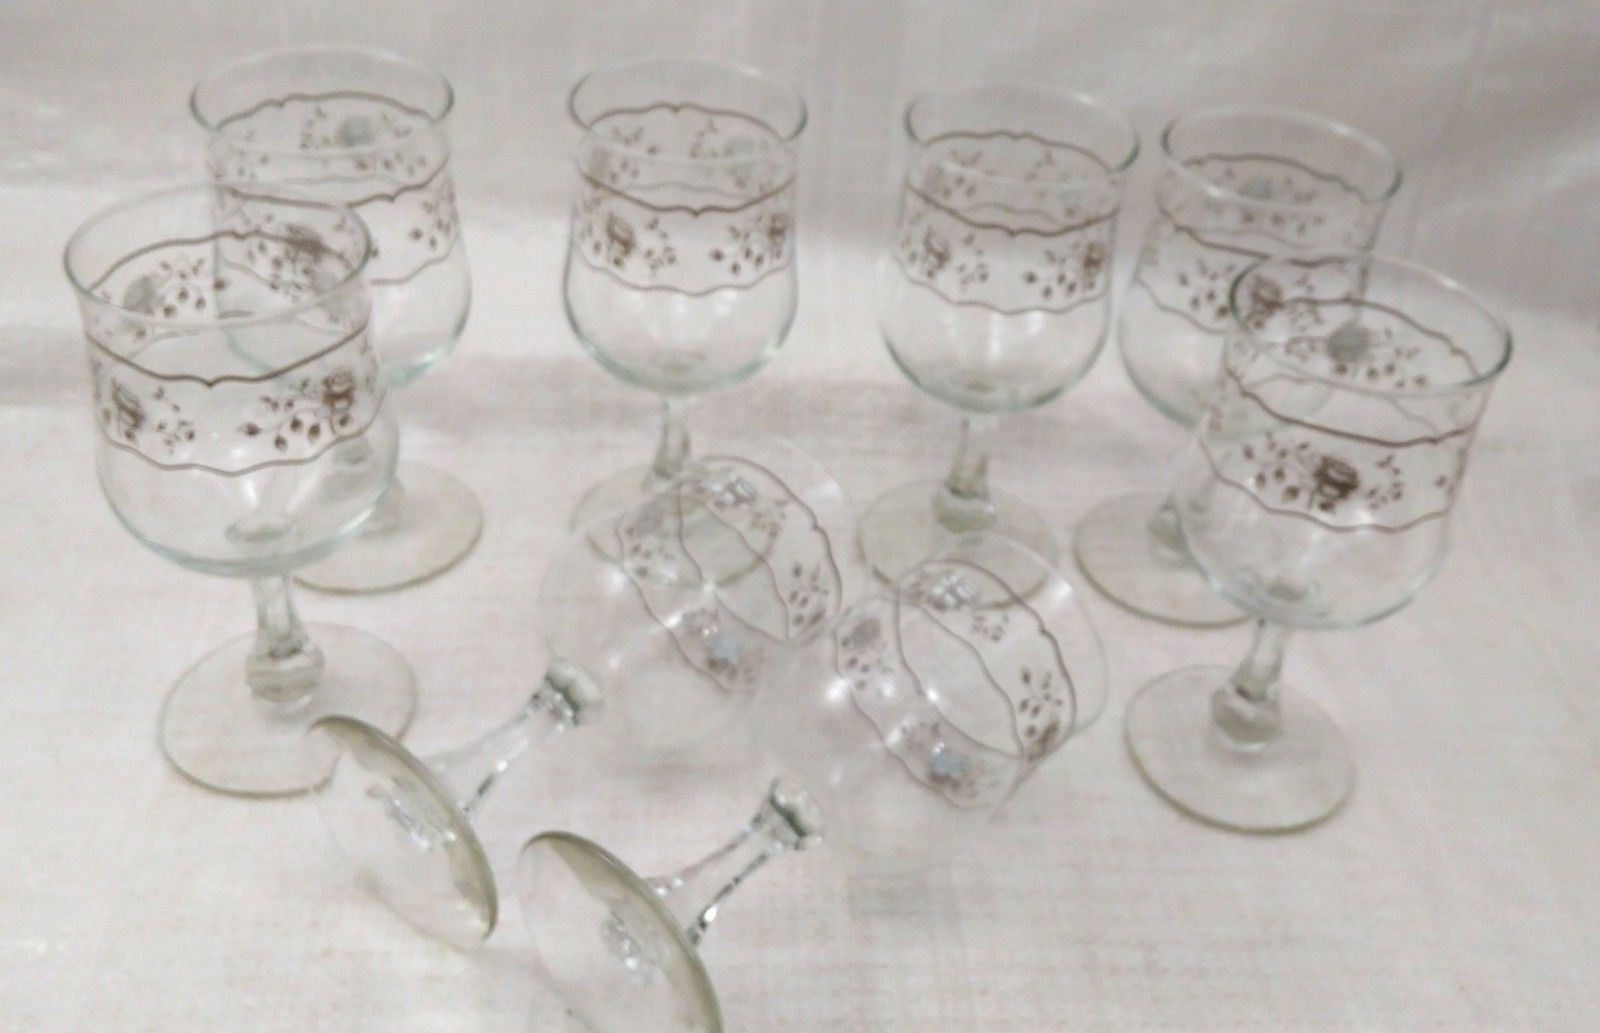 Set of 8 Crystal Wine Glasses with White and Silver Roses Design